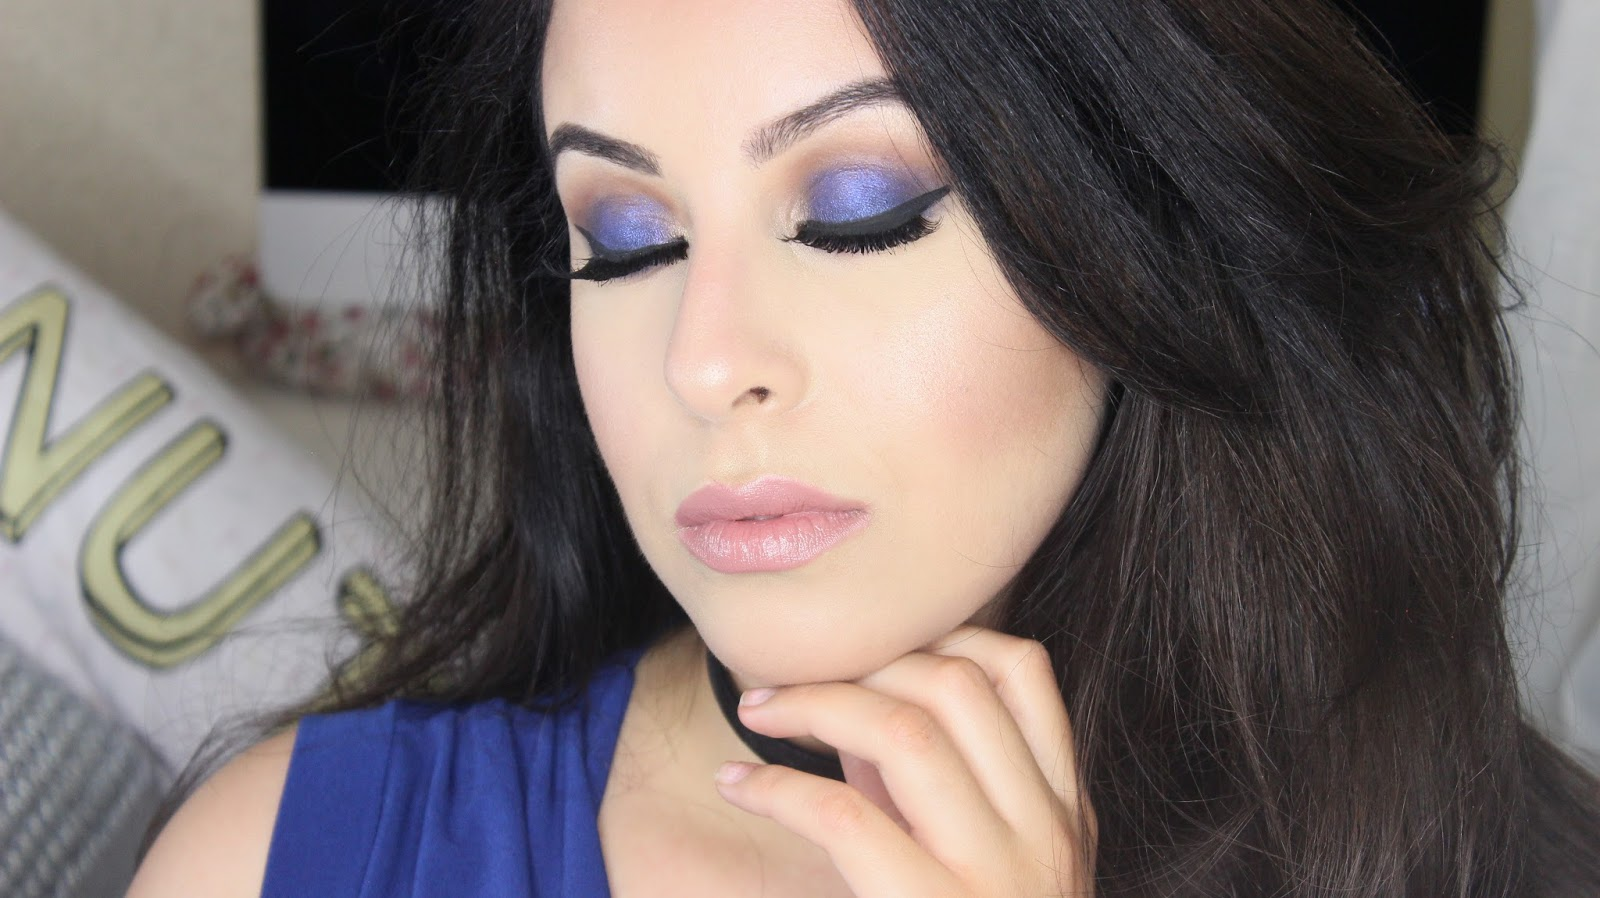 Navy Blue Eye Makeup Makeupgeek Cosmetics Youtube Video Beauty